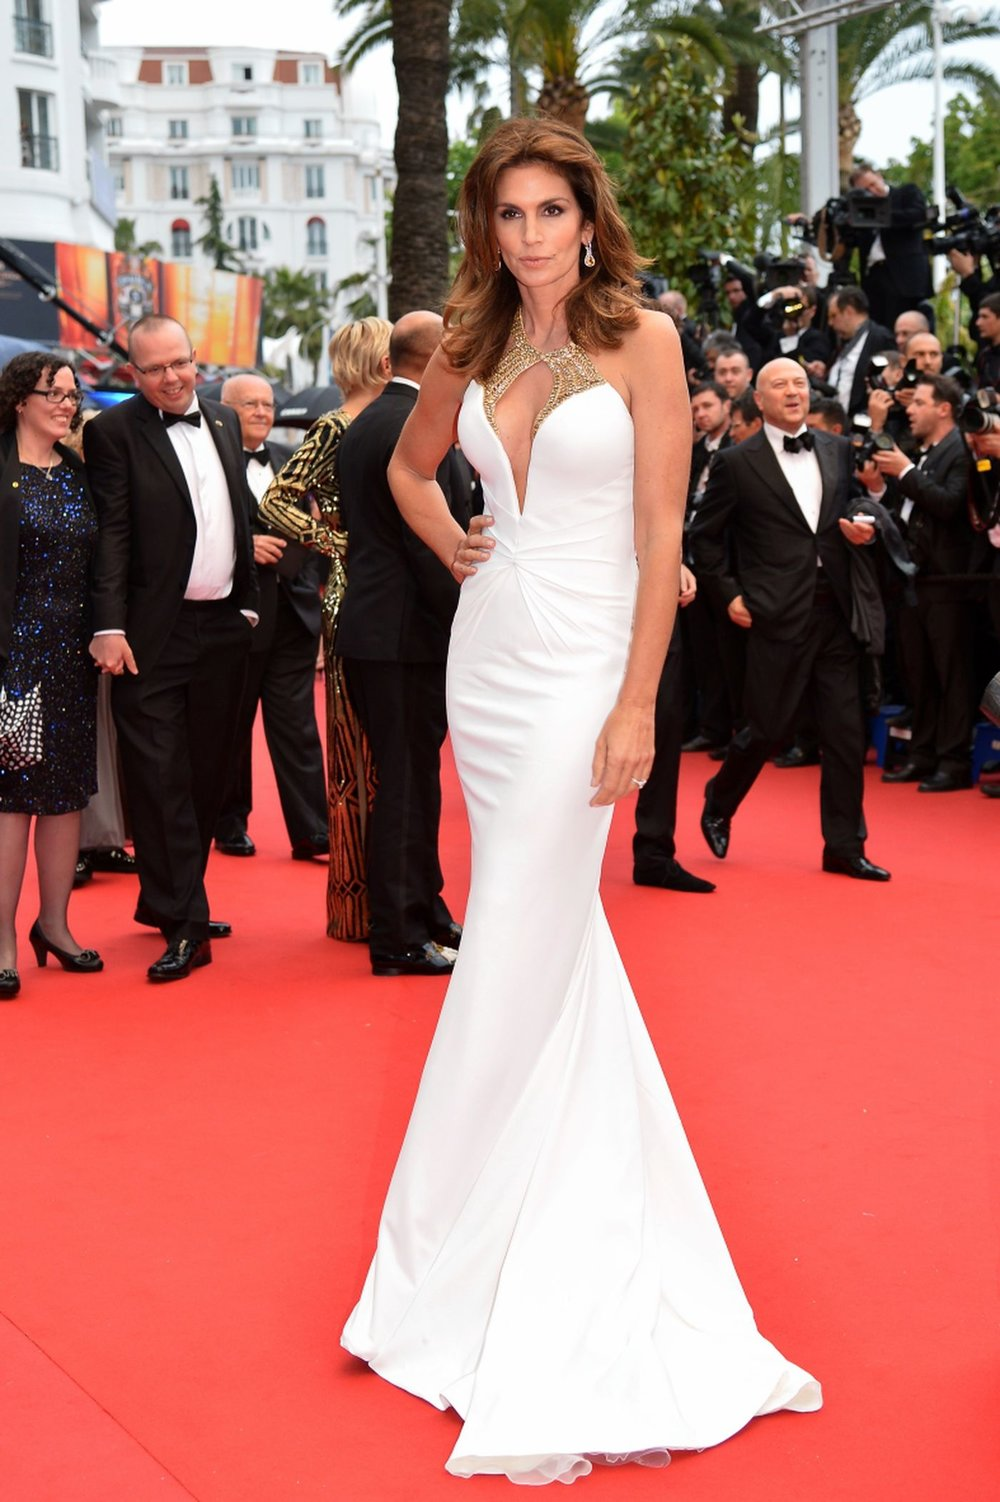 Cindy Crawford  wearing  Roberto Cavalli  at Cannes 2016